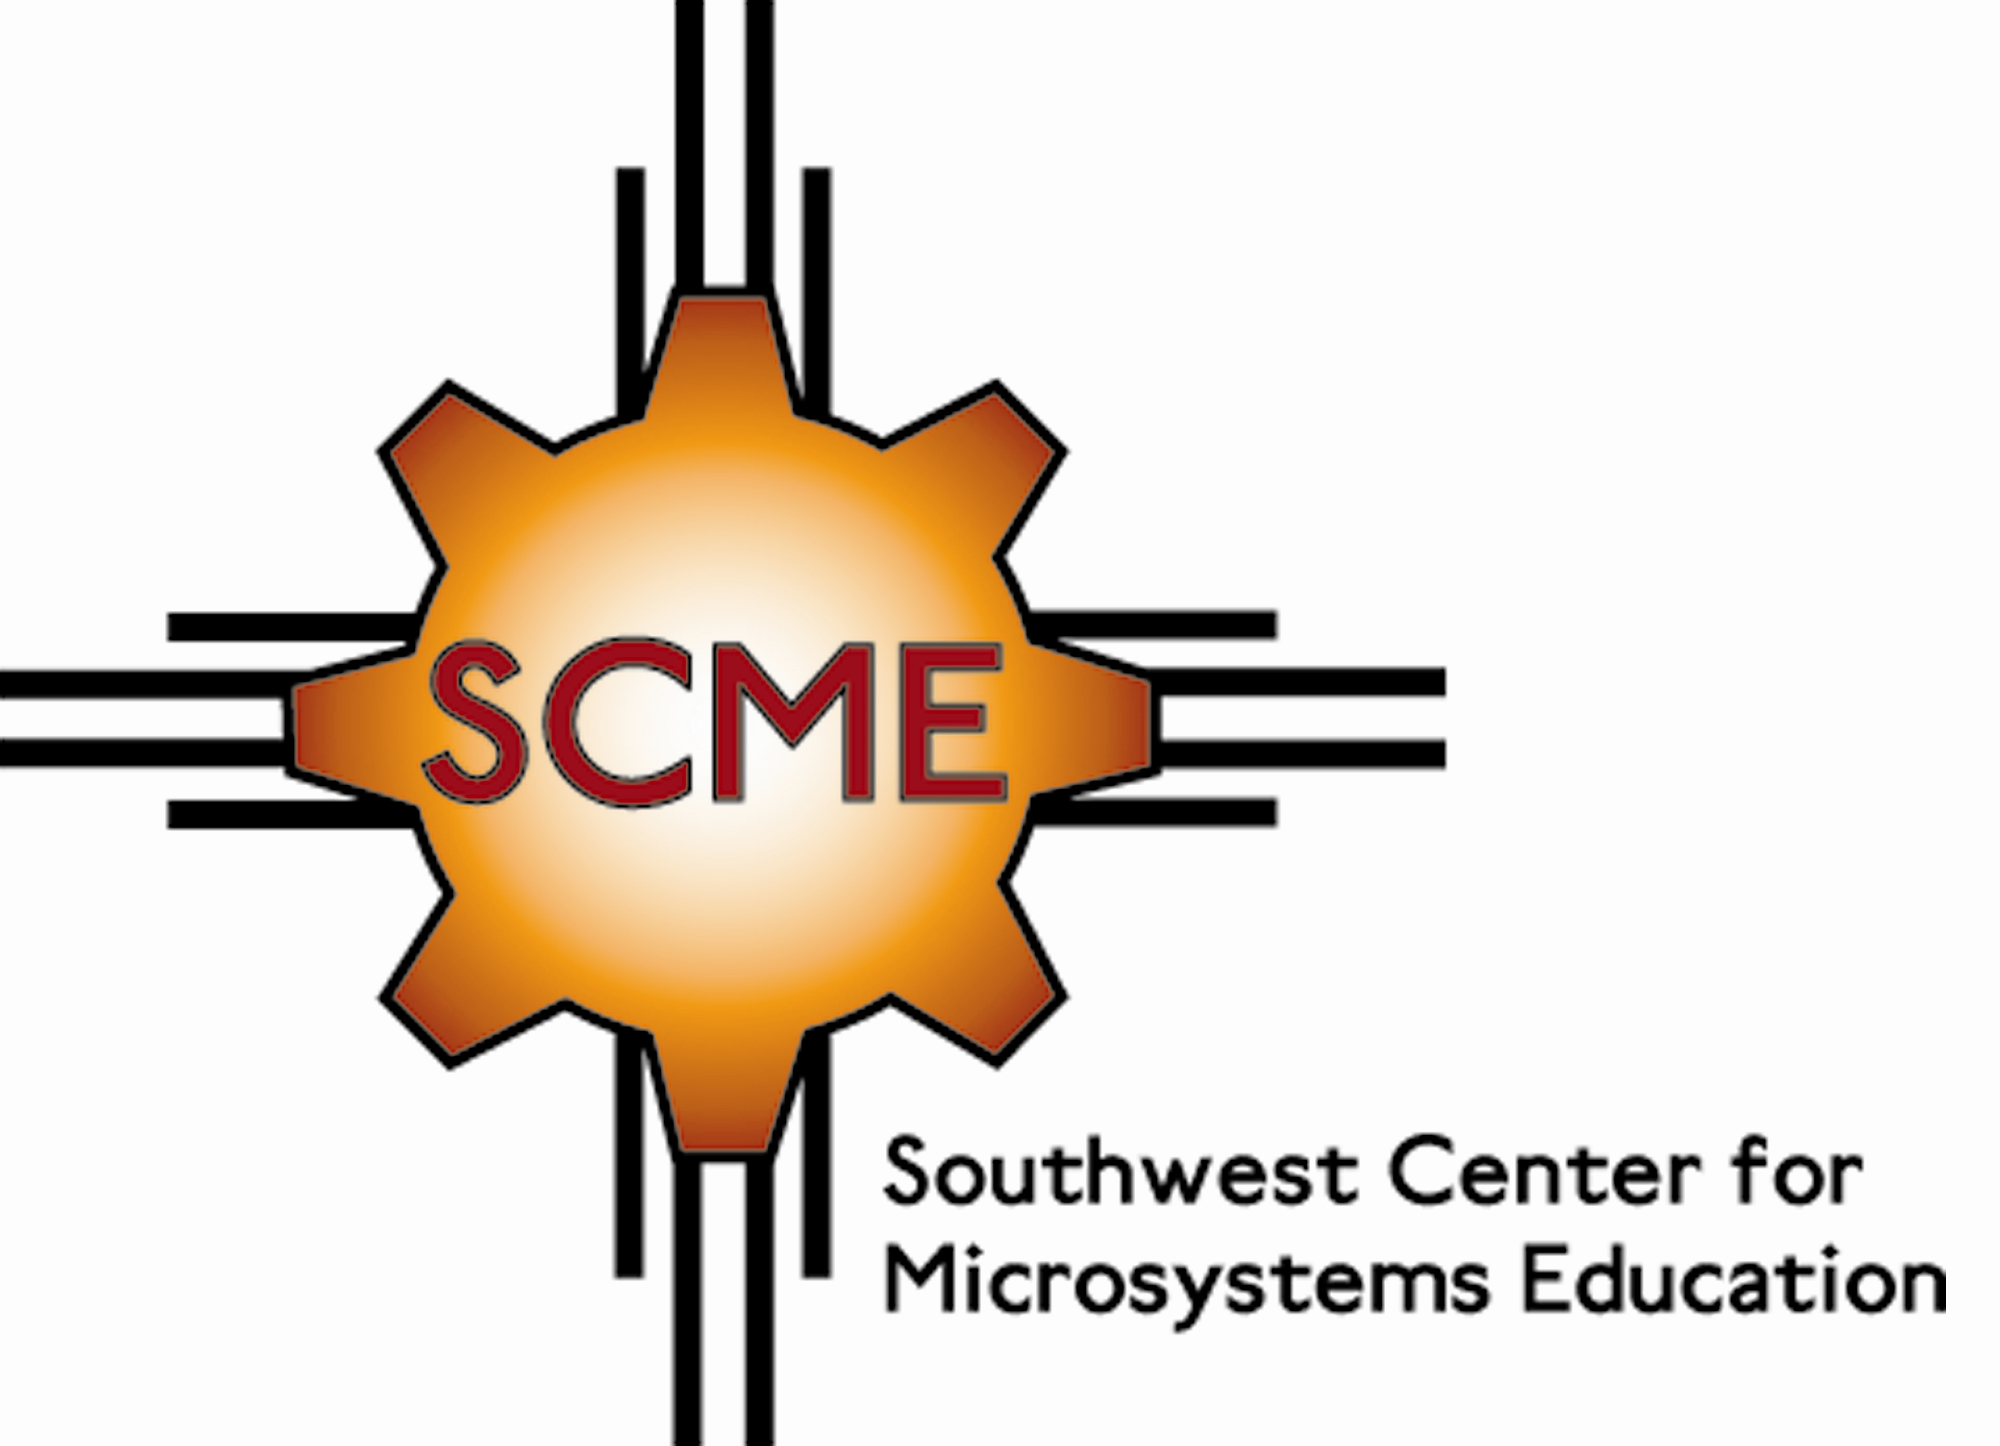 SCME-NM Southwest Center for Microsystems Education group image